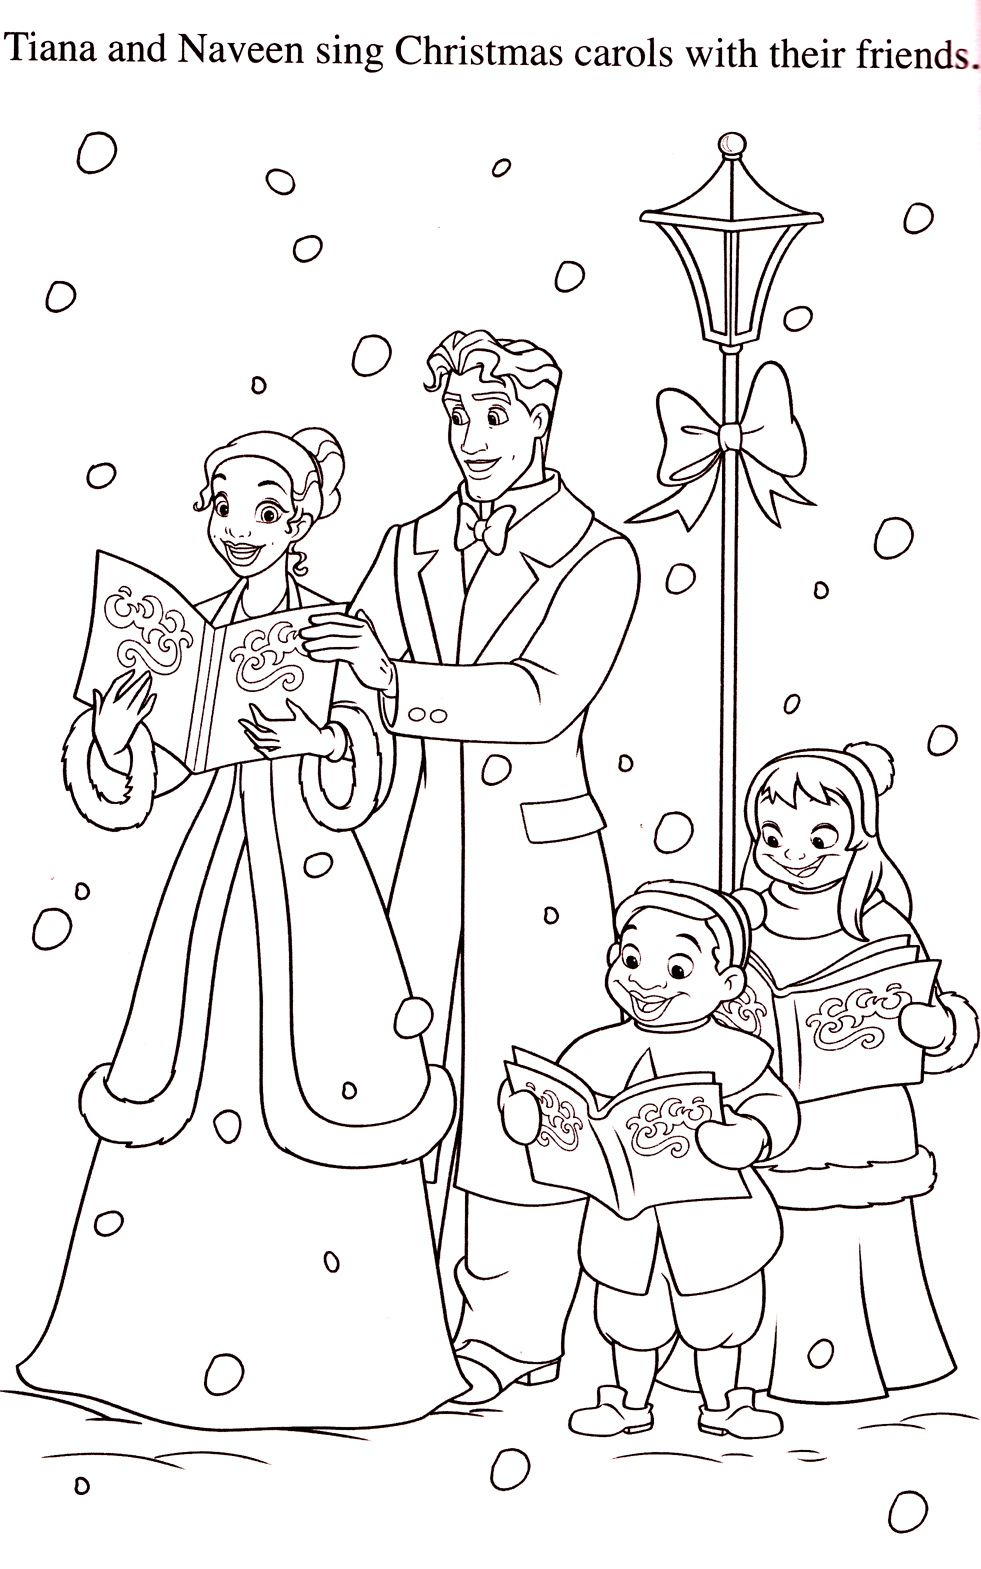 Disney Coloring Pages | Disney Coloring Pages | Pinterest | Coloring ...